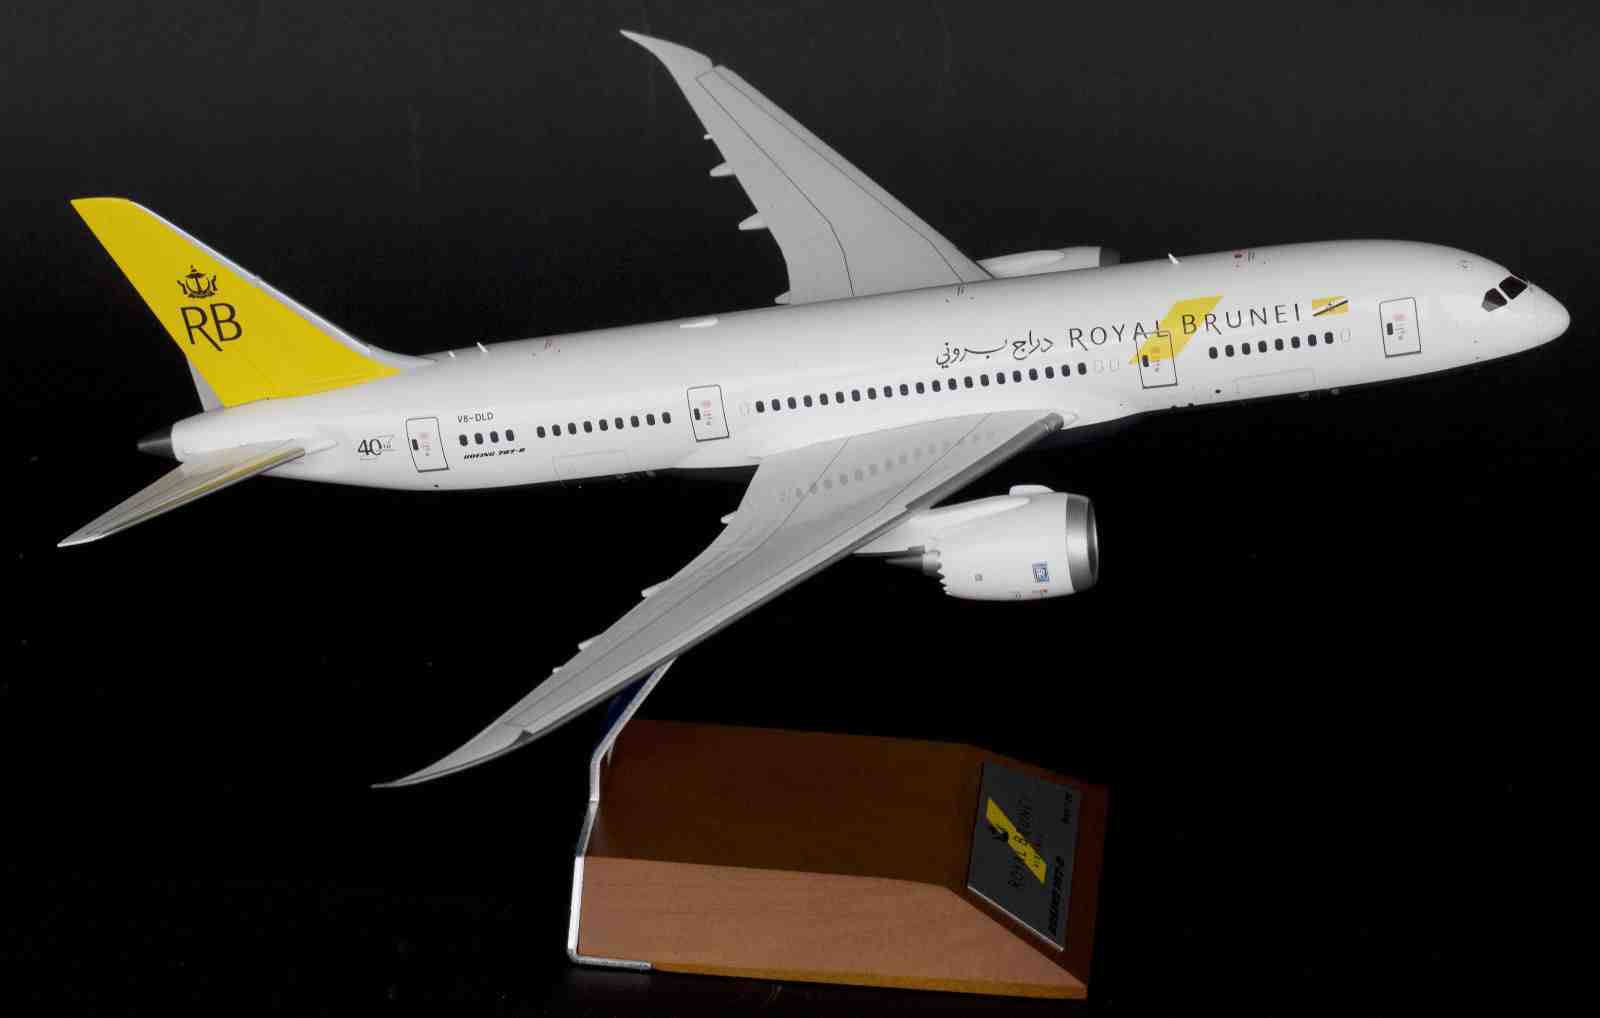 JC WINGS JC2442 1 200 ROYAL BRUNEI B787-8 V8-DLD WITH STAND